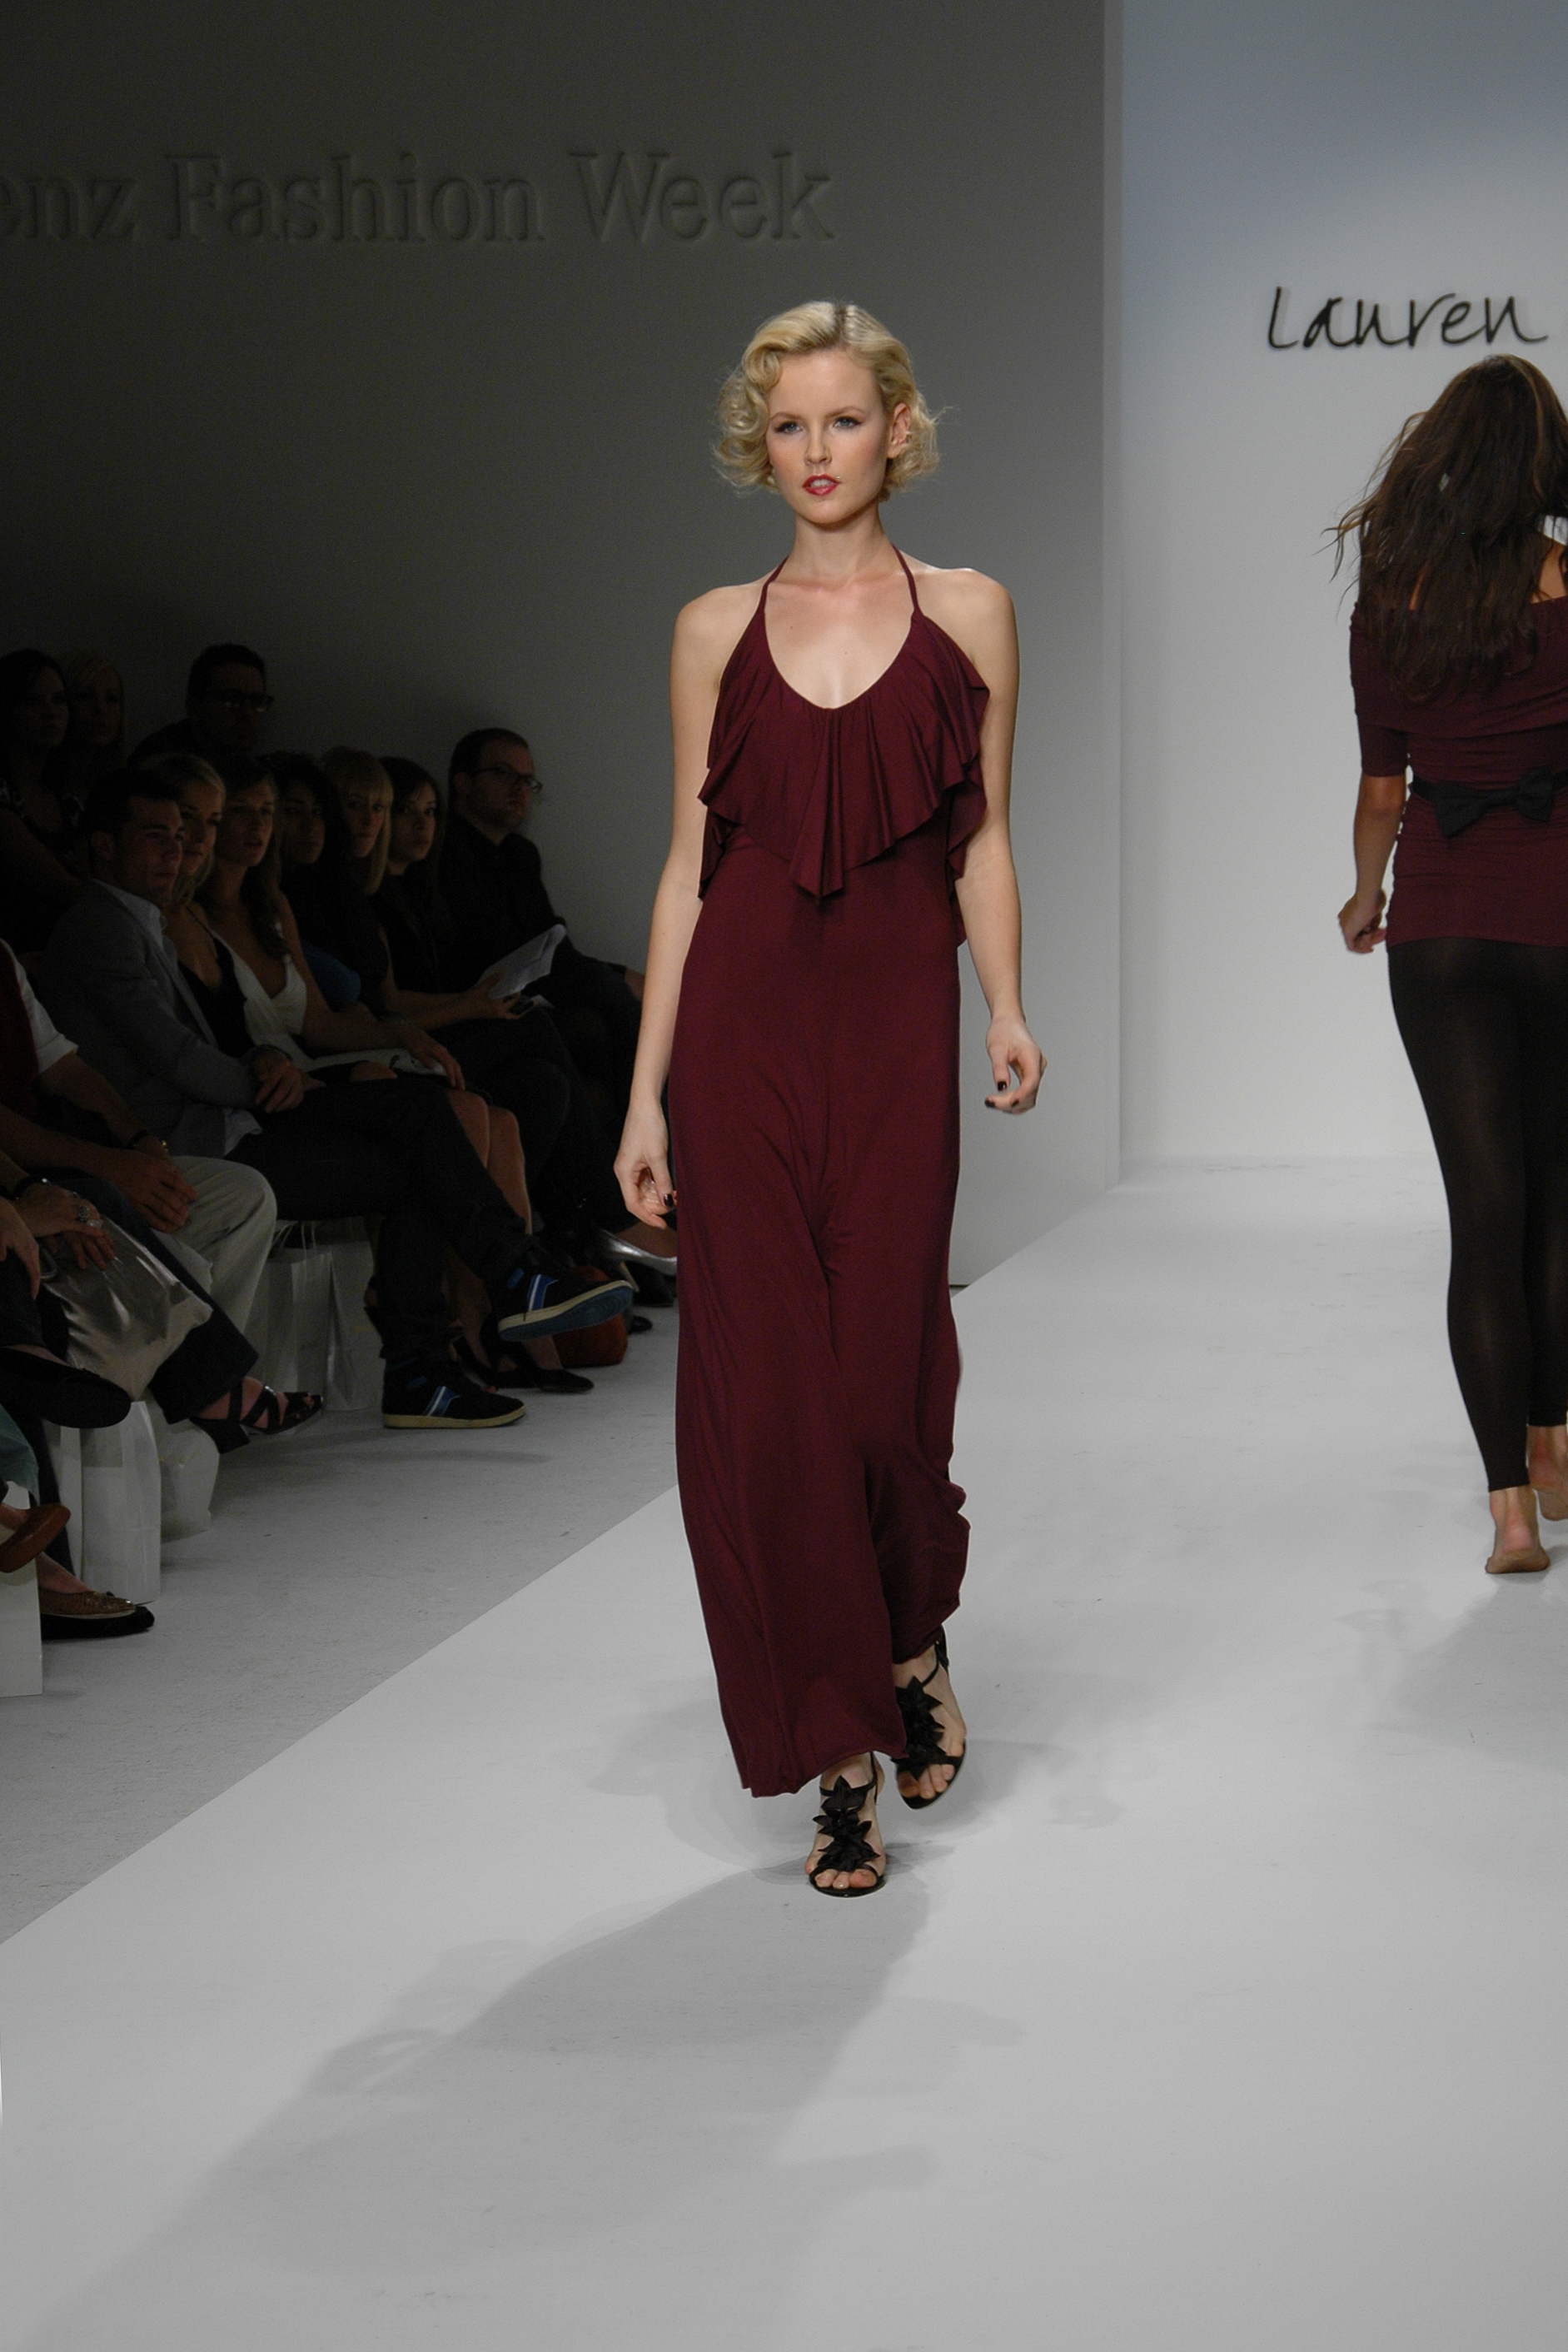 https://upload.wikimedia.org/wikipedia/commons/6/64/LA_Fashion_Week_3-11-2008.jpg